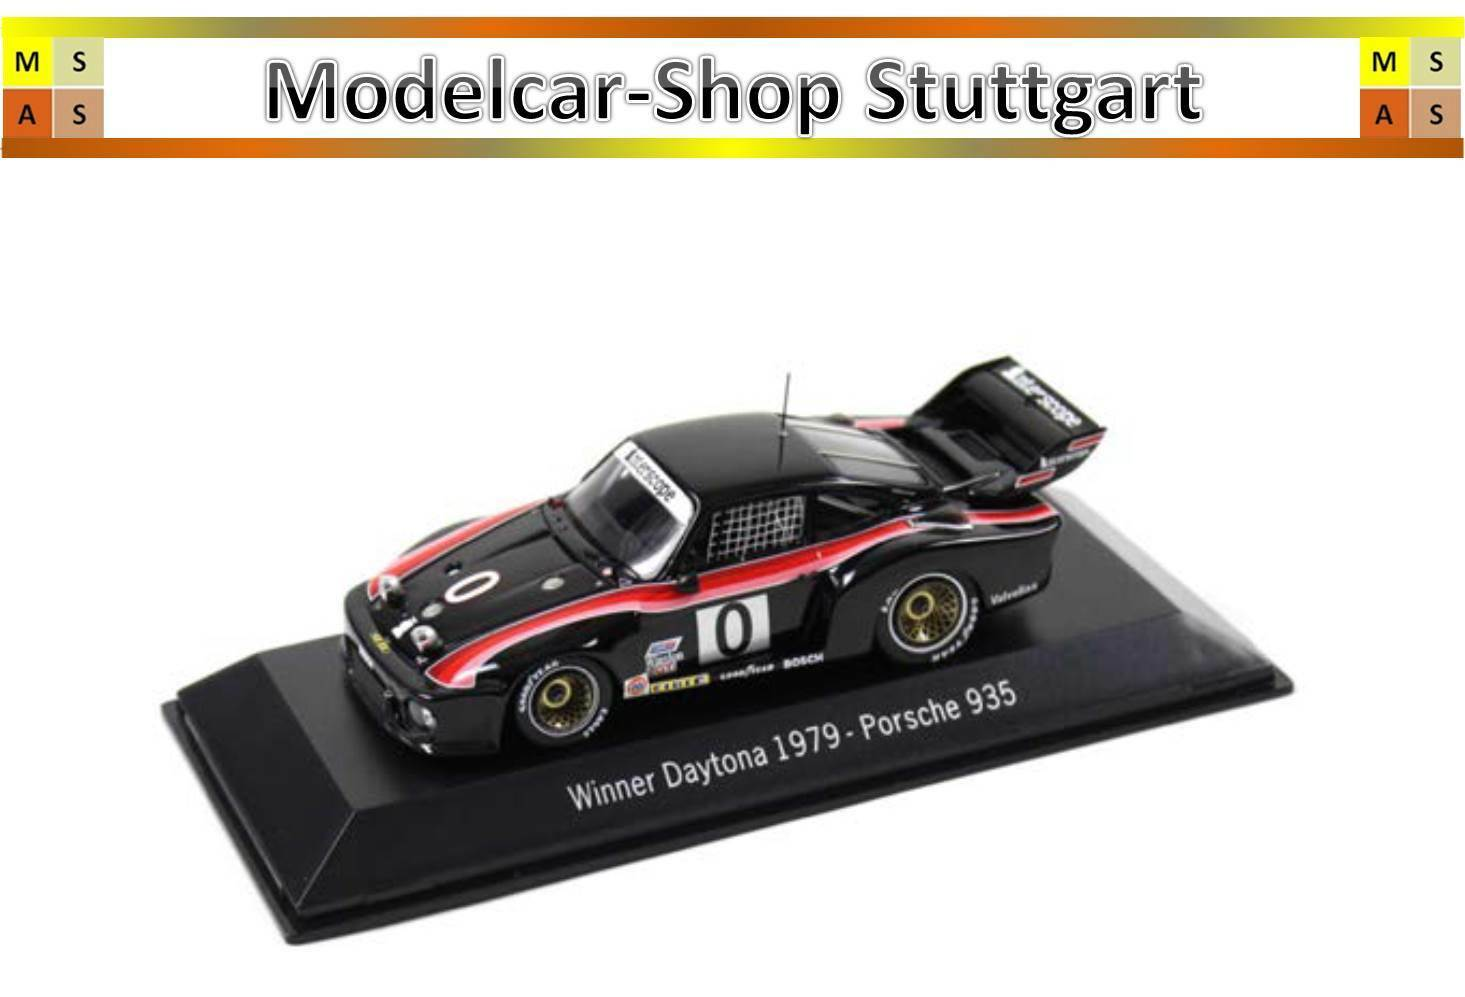 Porsche 935 - Winner Daytona 1979 - Spark 1 43 - map02027914 - BRAND NEW